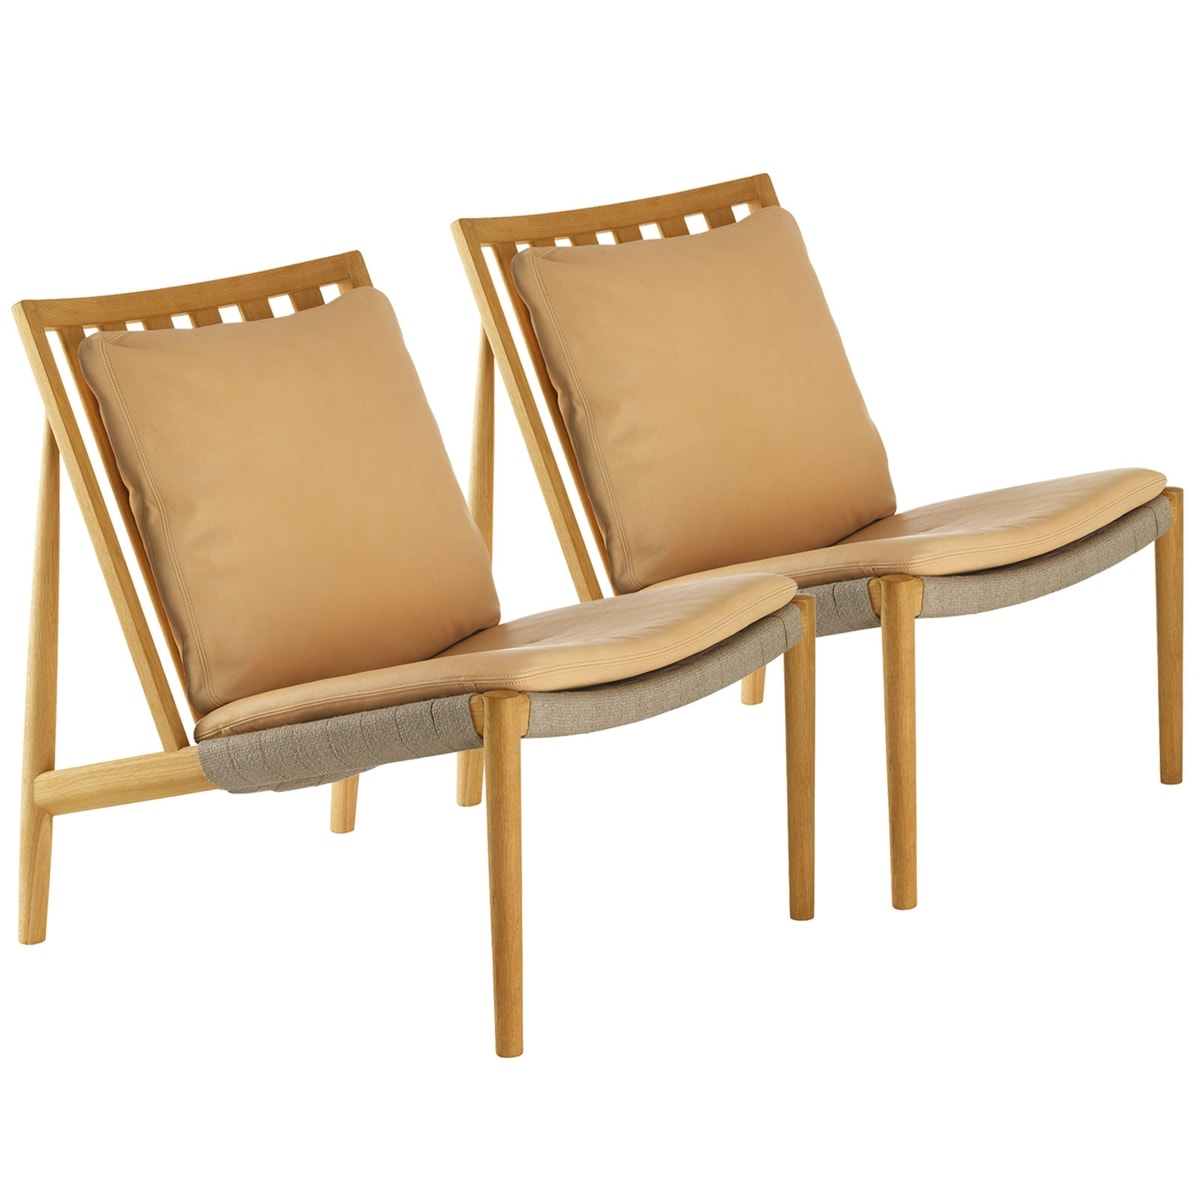 Duo Easy chair Ek olja Skinn natur